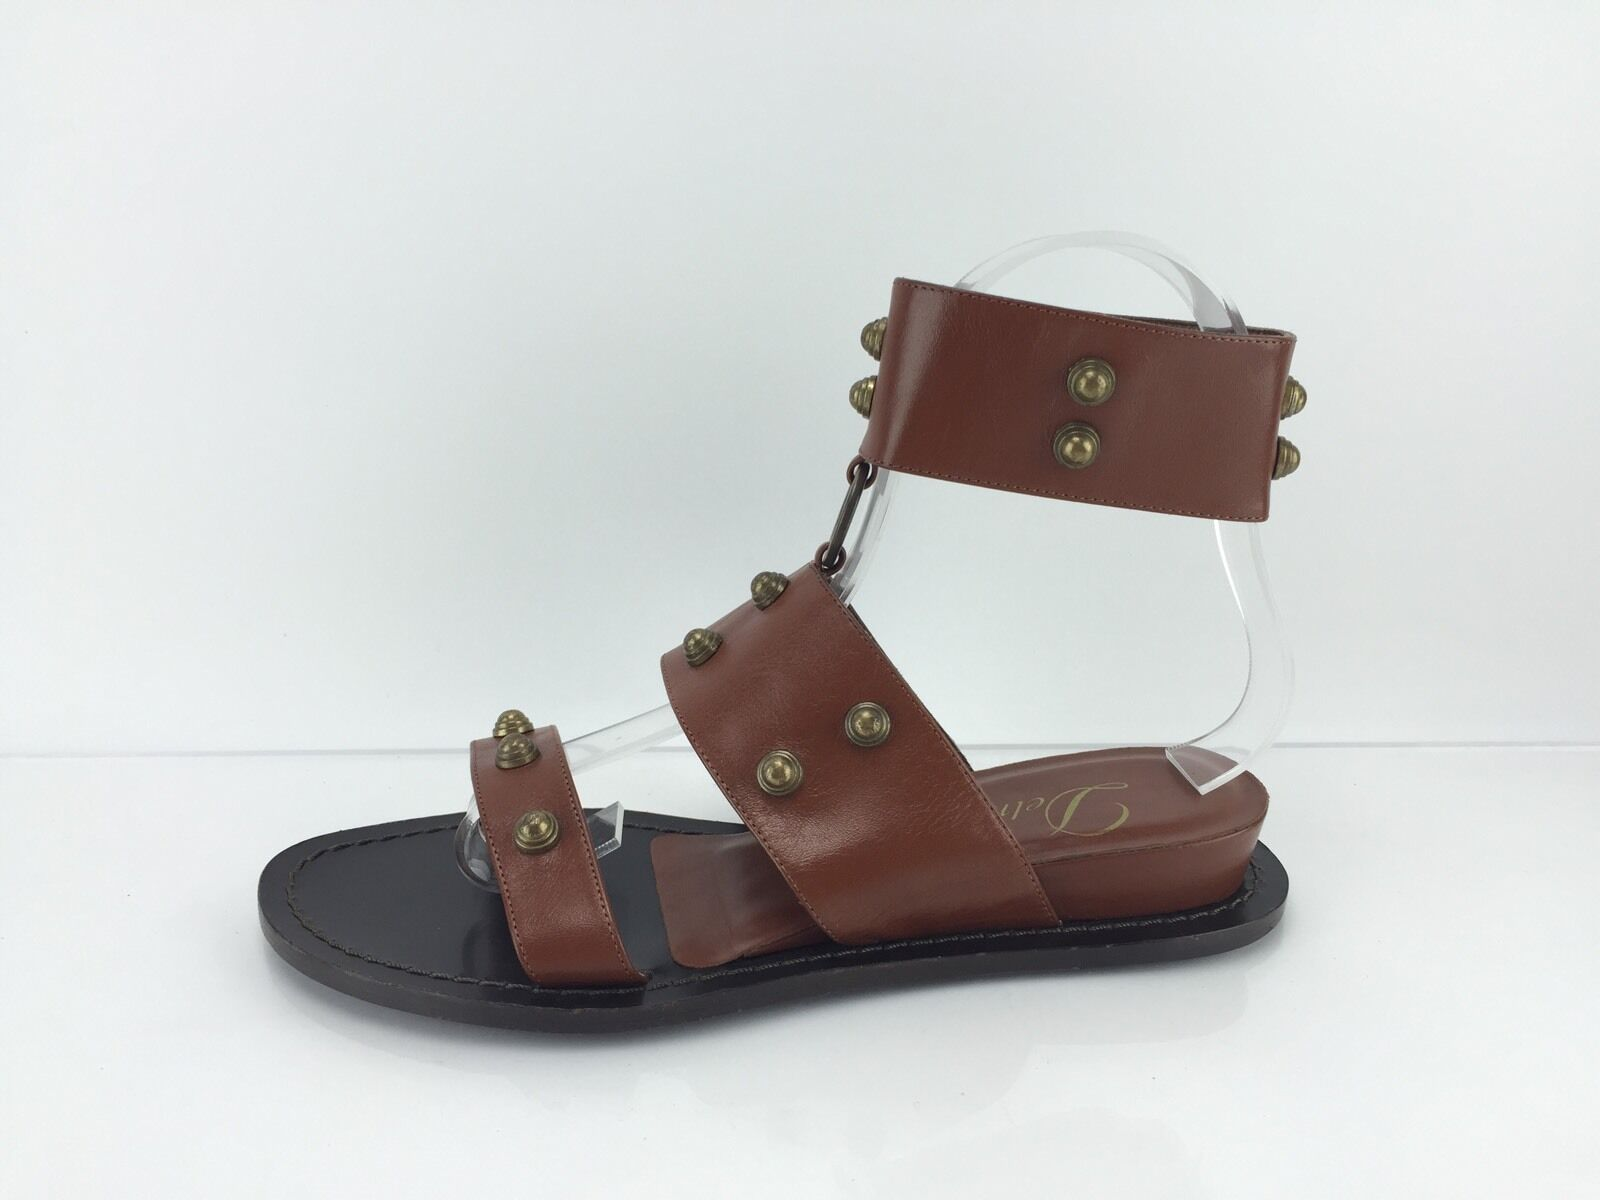 Delman 5.5 Women's Brown Studded Sandals 5.5 Delman B 112a1c